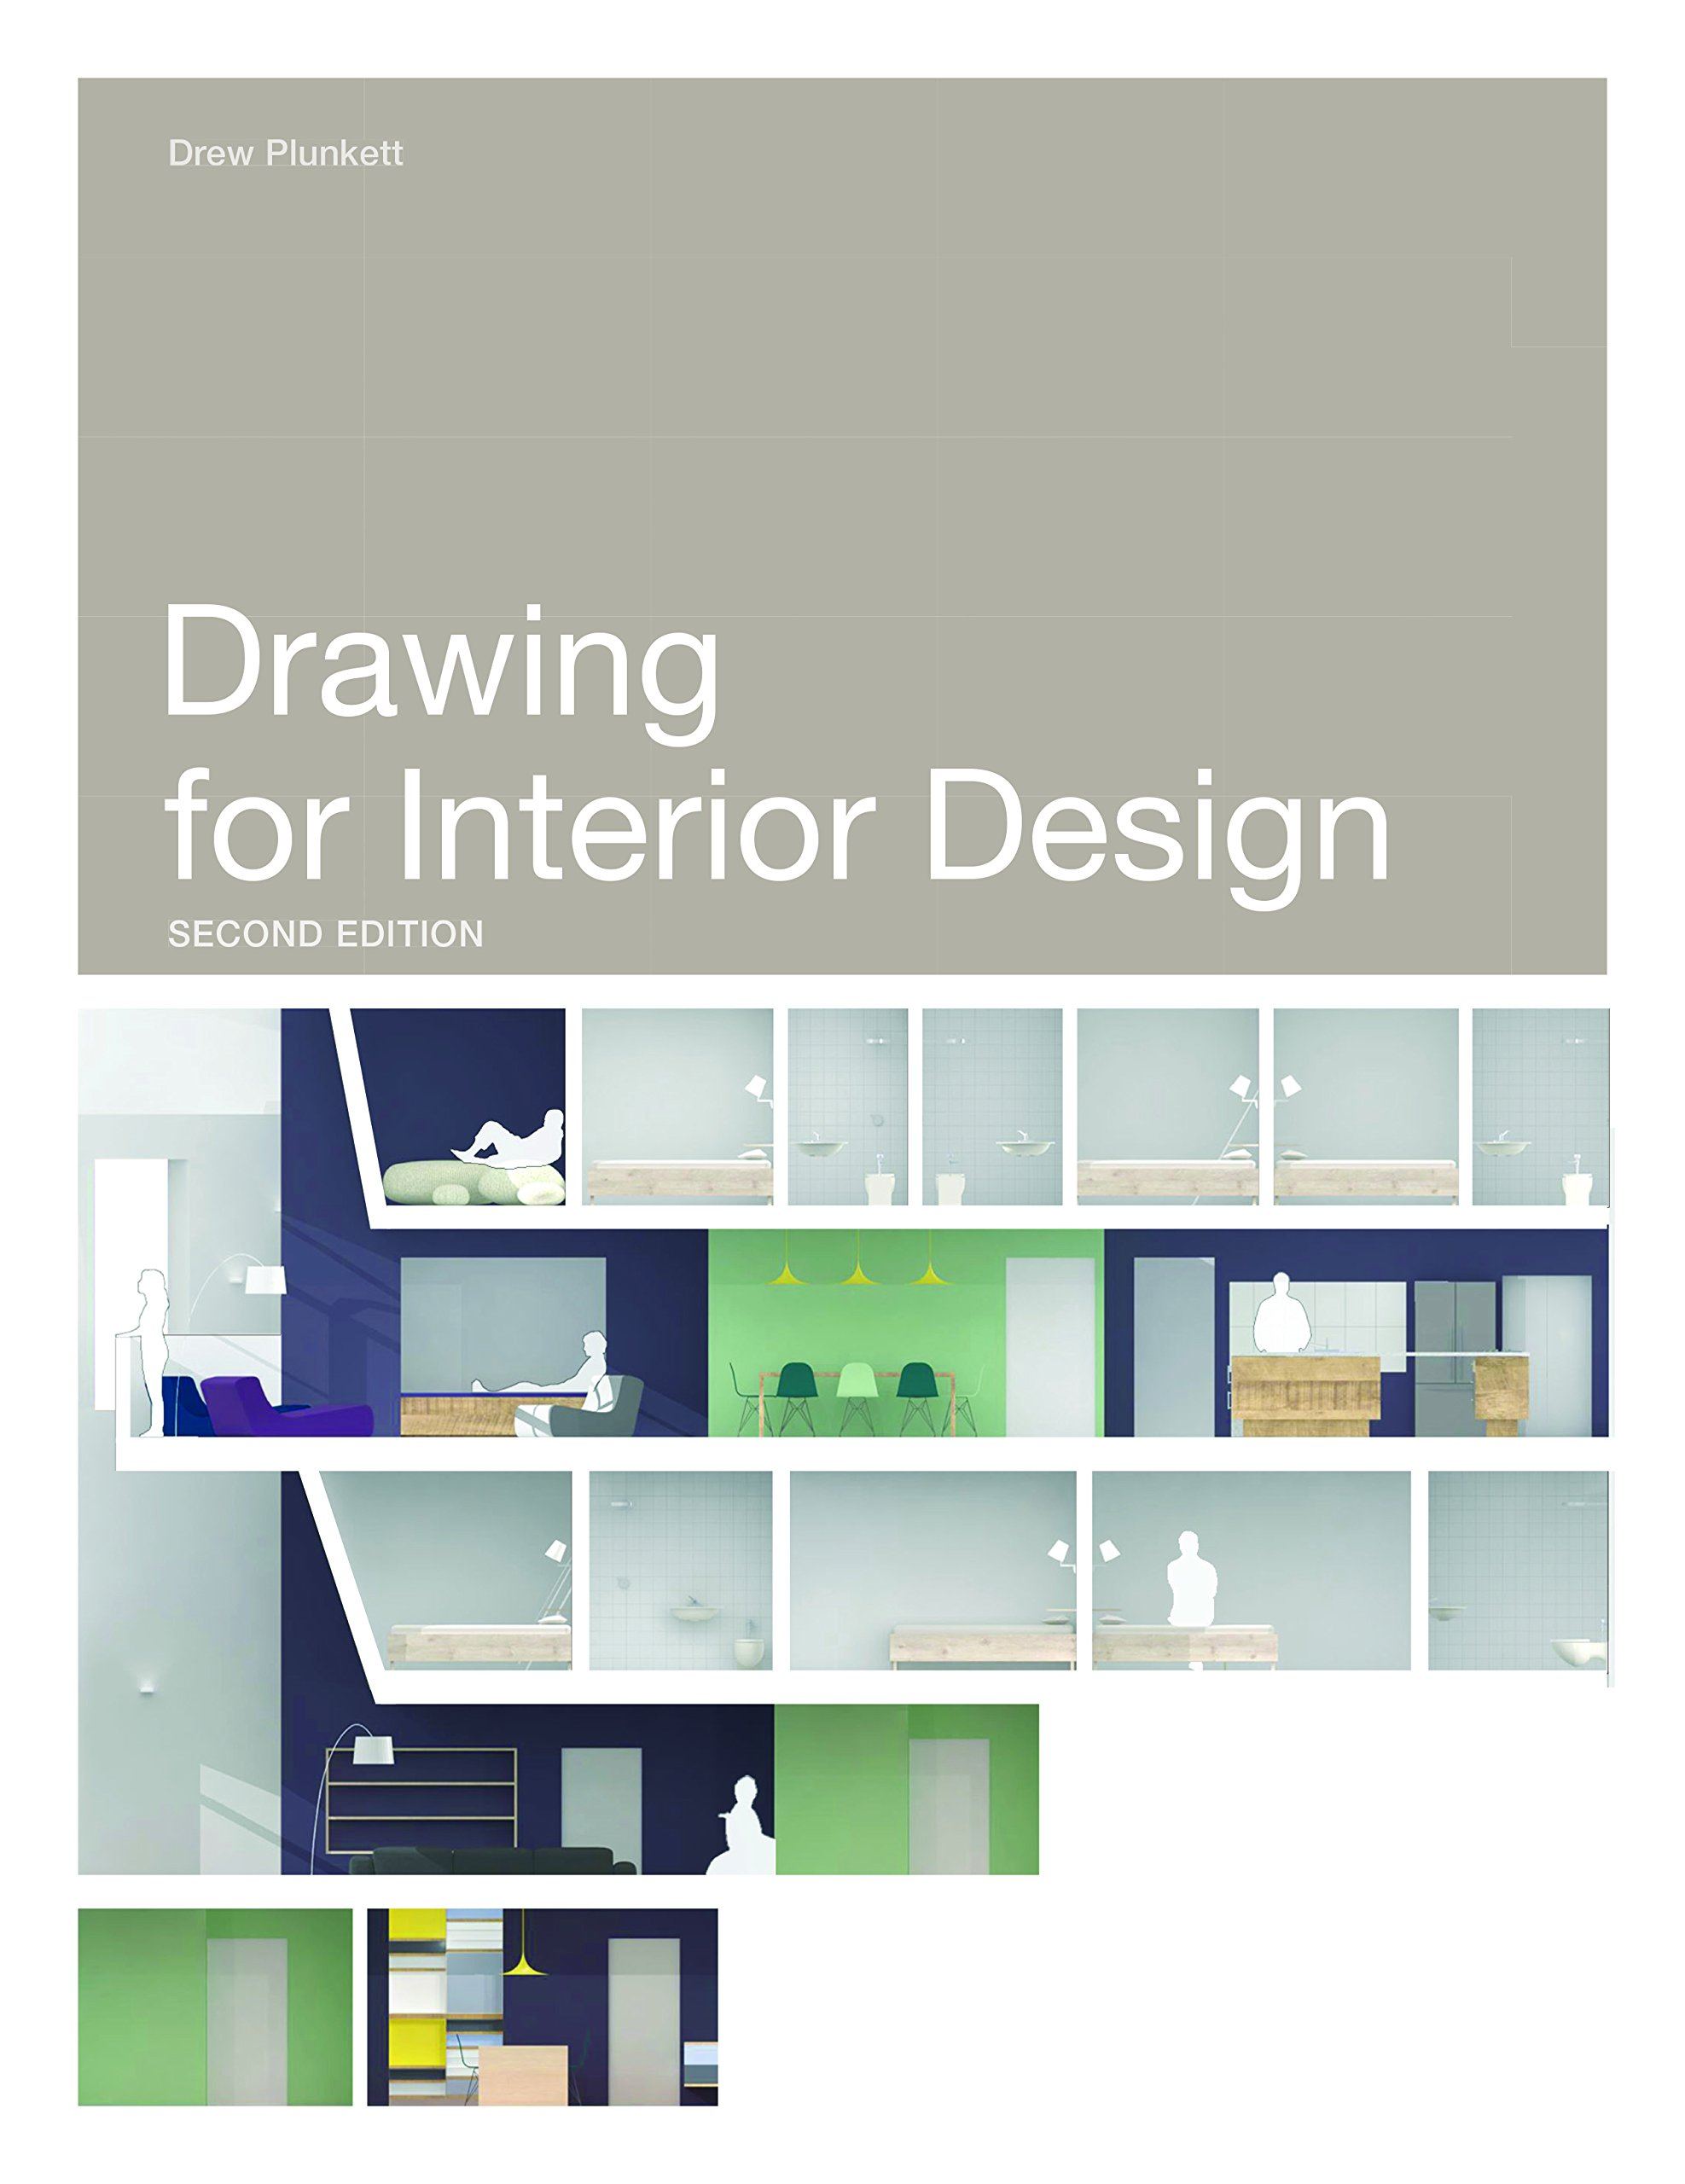 Drawing For Interior Design 2nd Edition Kindle Edition By Plunkett Drew Arts Photography Kindle Ebooks Amazon Com,Palm Mehndi Beginner Easy Simple Mehndi Designs For Kids